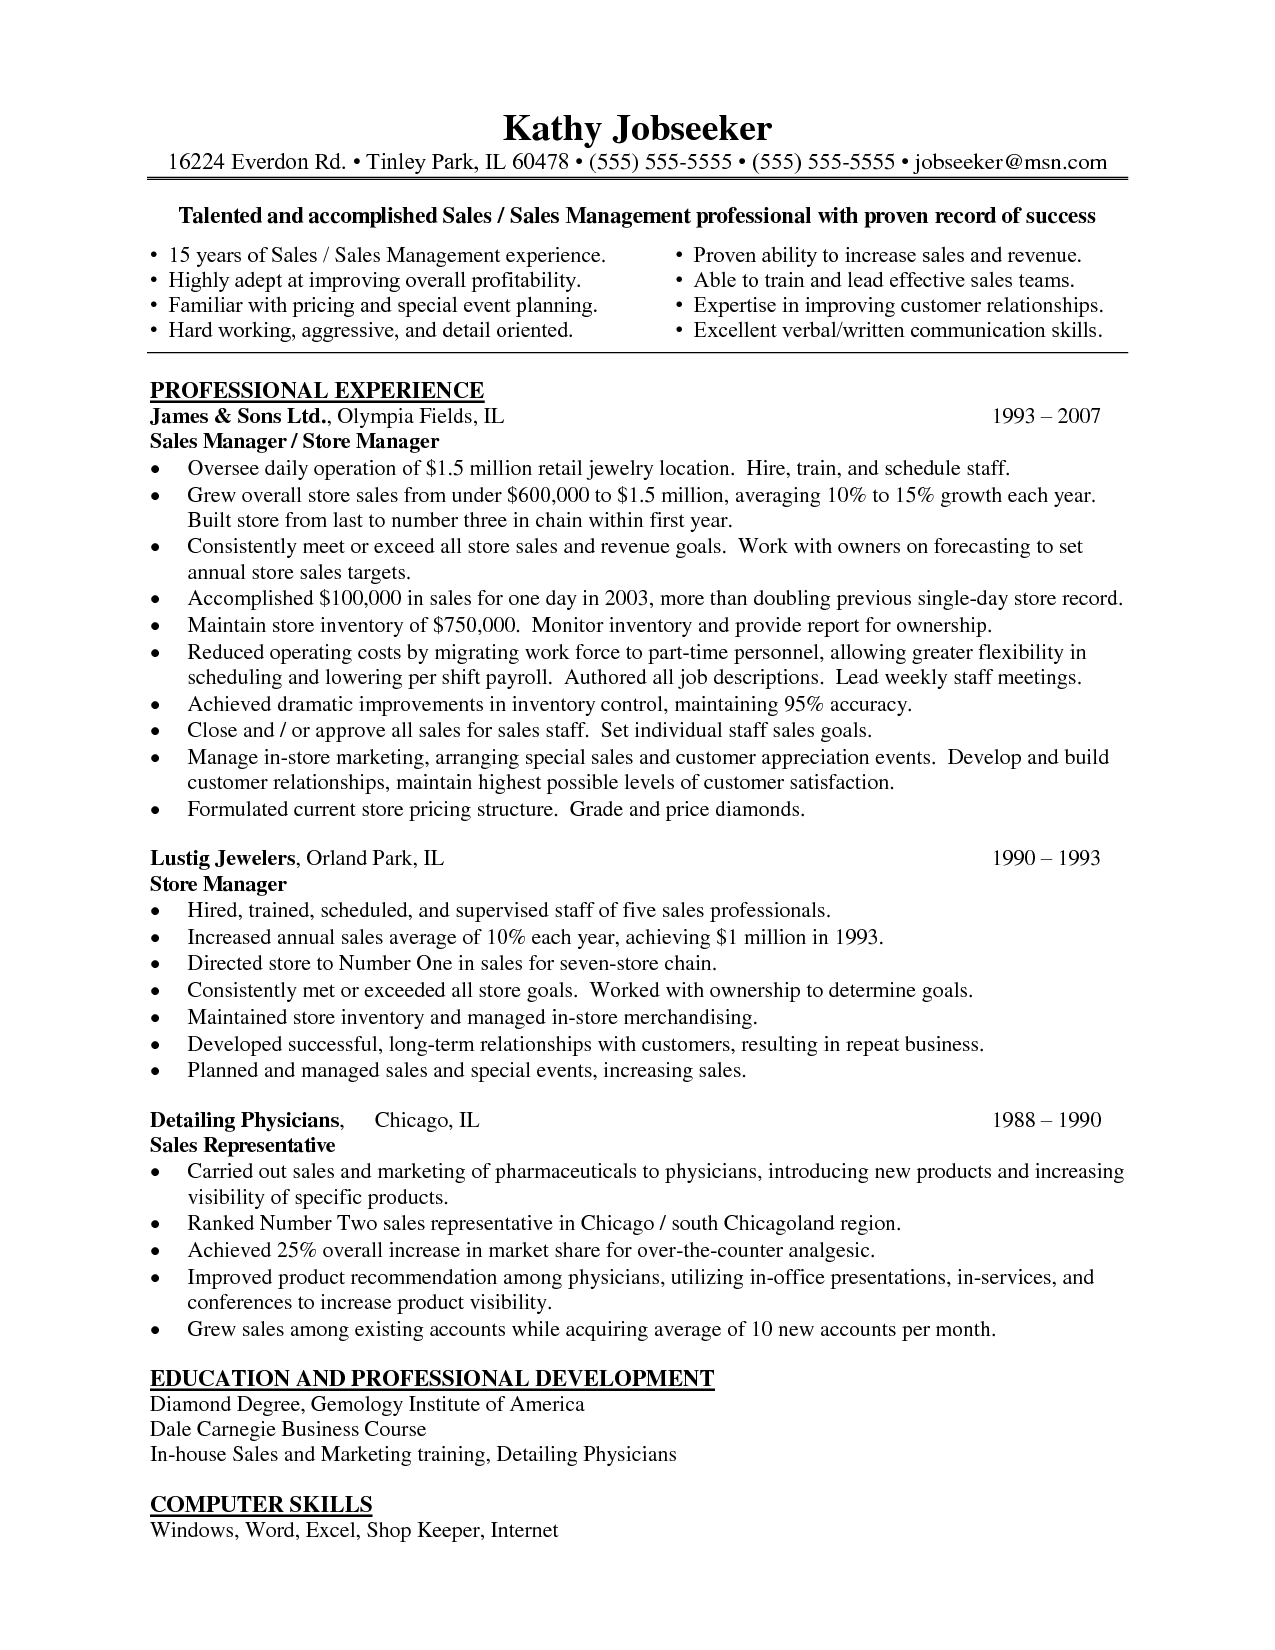 Resume Examples For Retail Store Manager | Sample Cover Letter For Retail  Management Job 4  Retail Manager Resume Examples